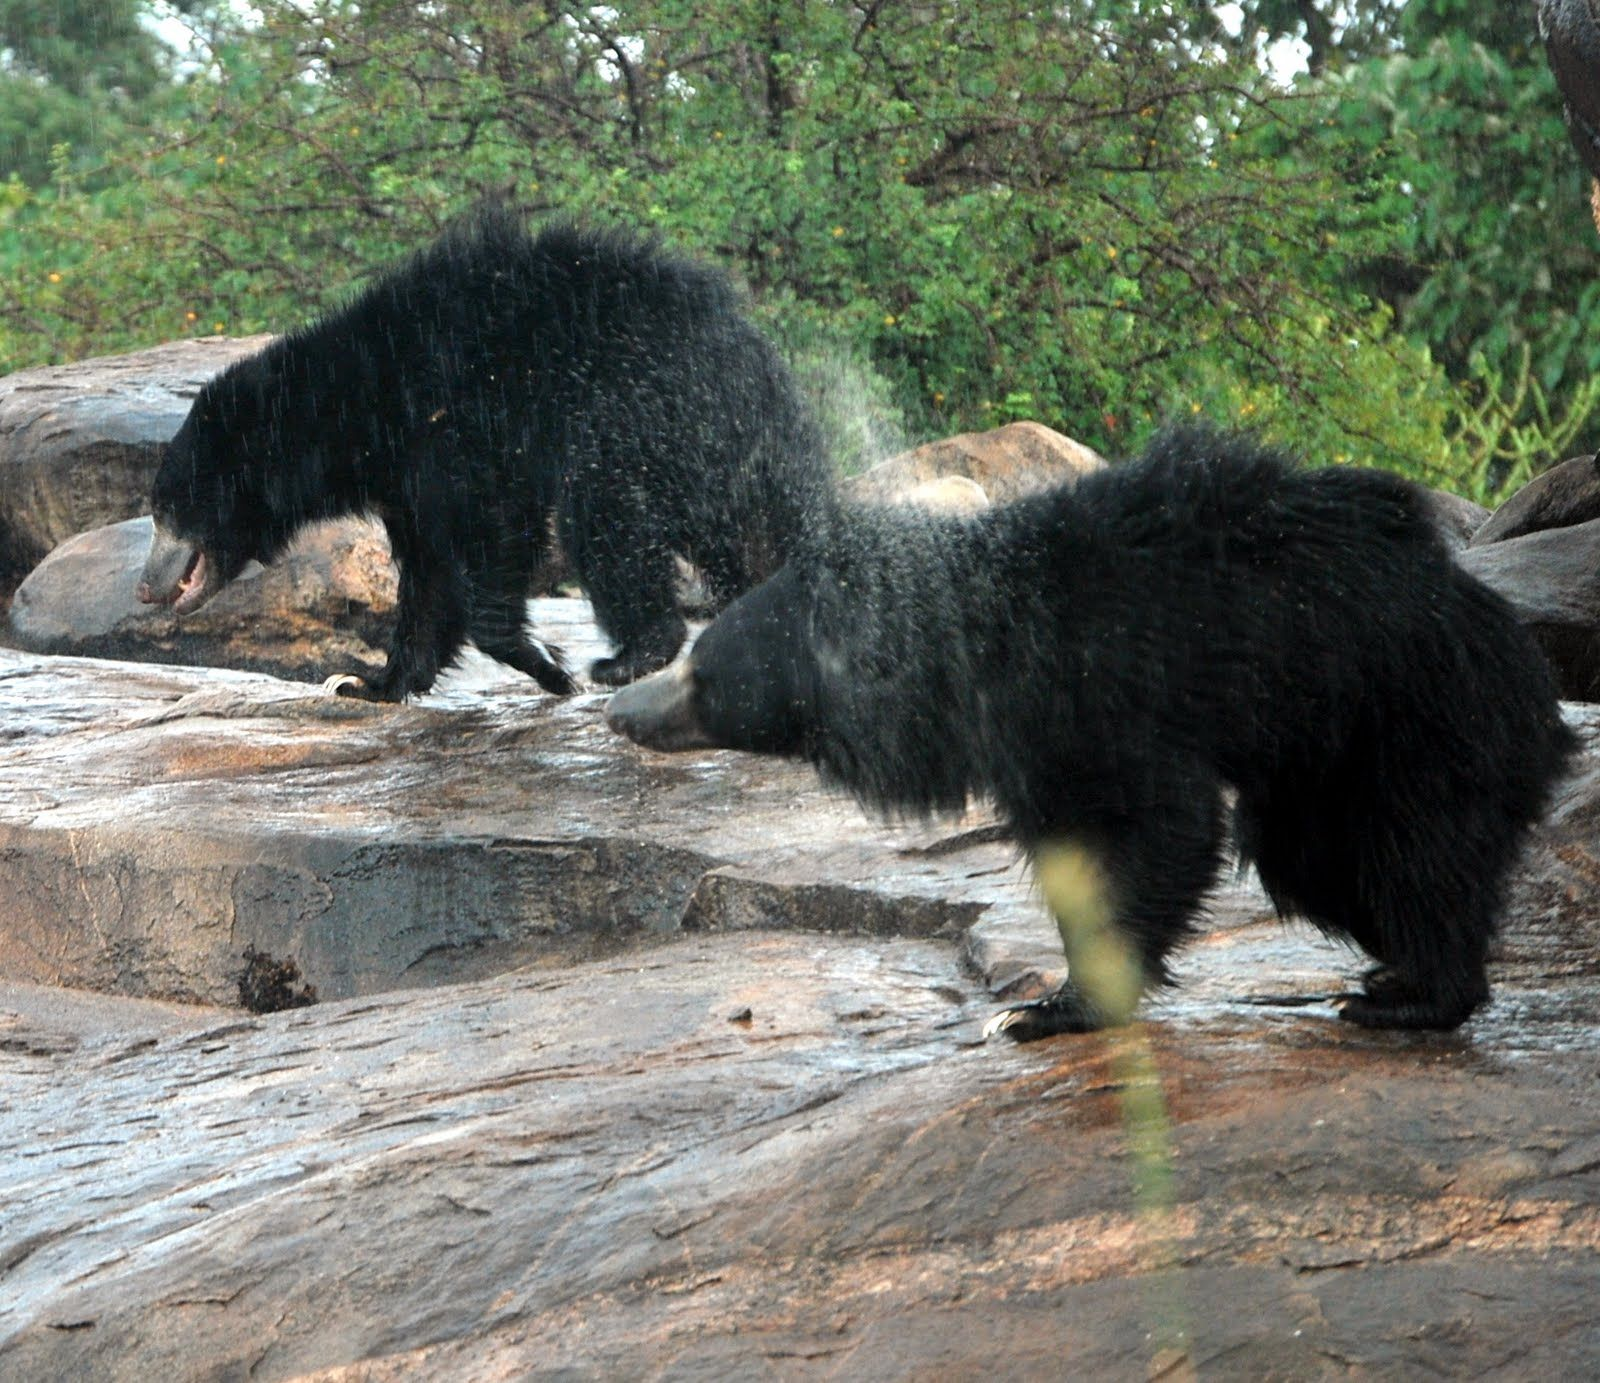 The sloth bear is a nocturnal insectivorous species of